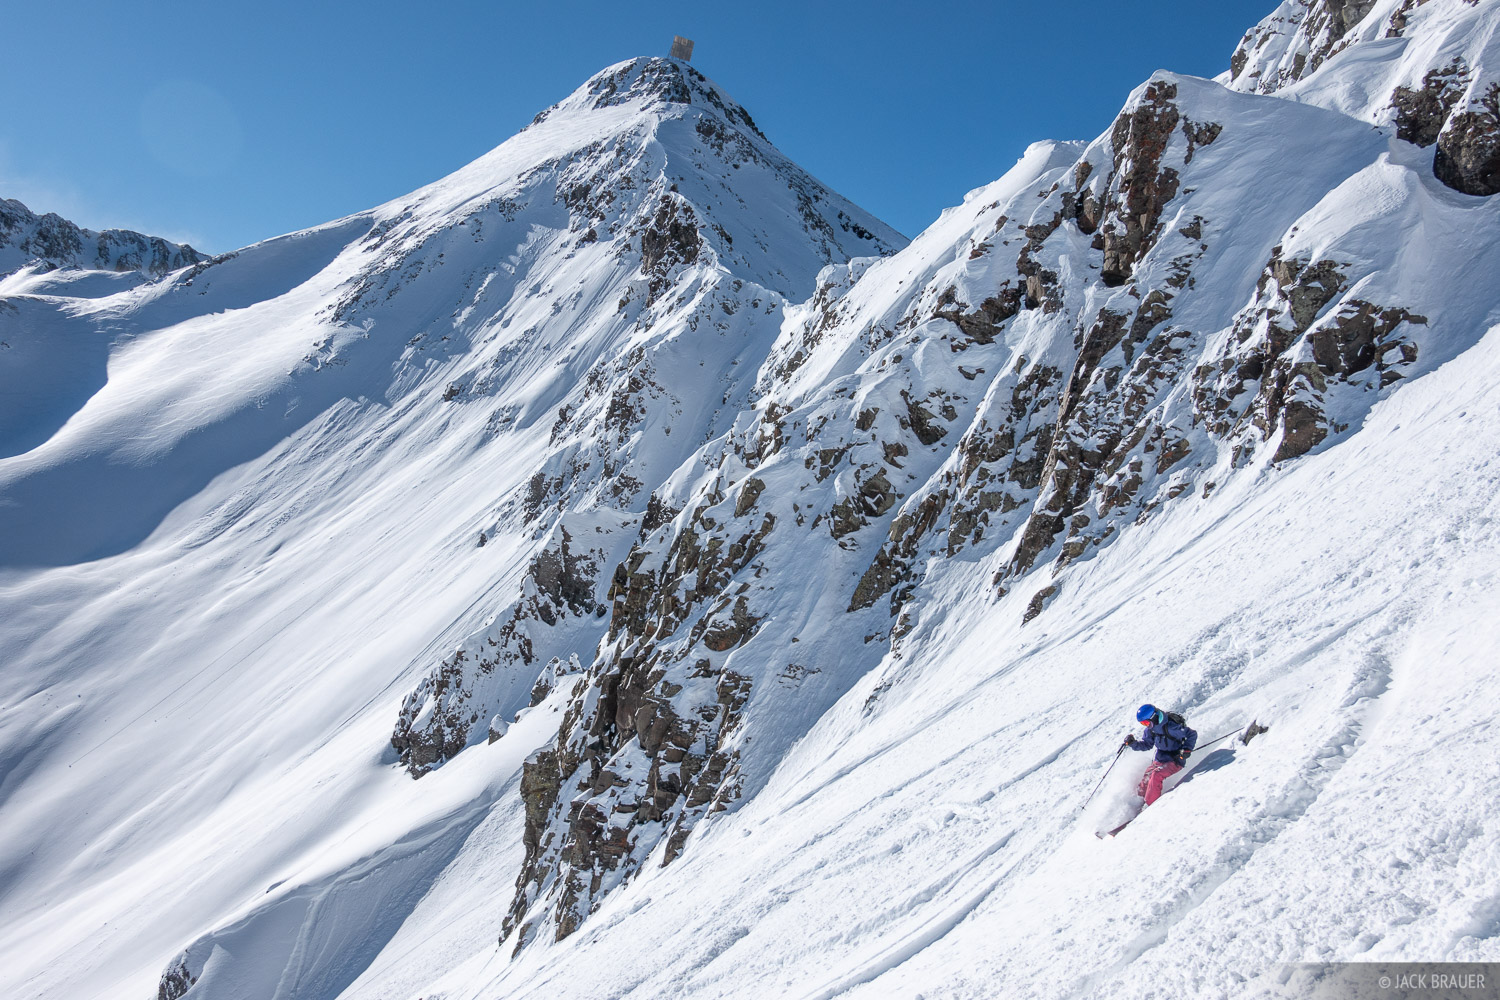 Colorado, San Juan Mountains, Silverton Mountain, skiing, Silverton, January